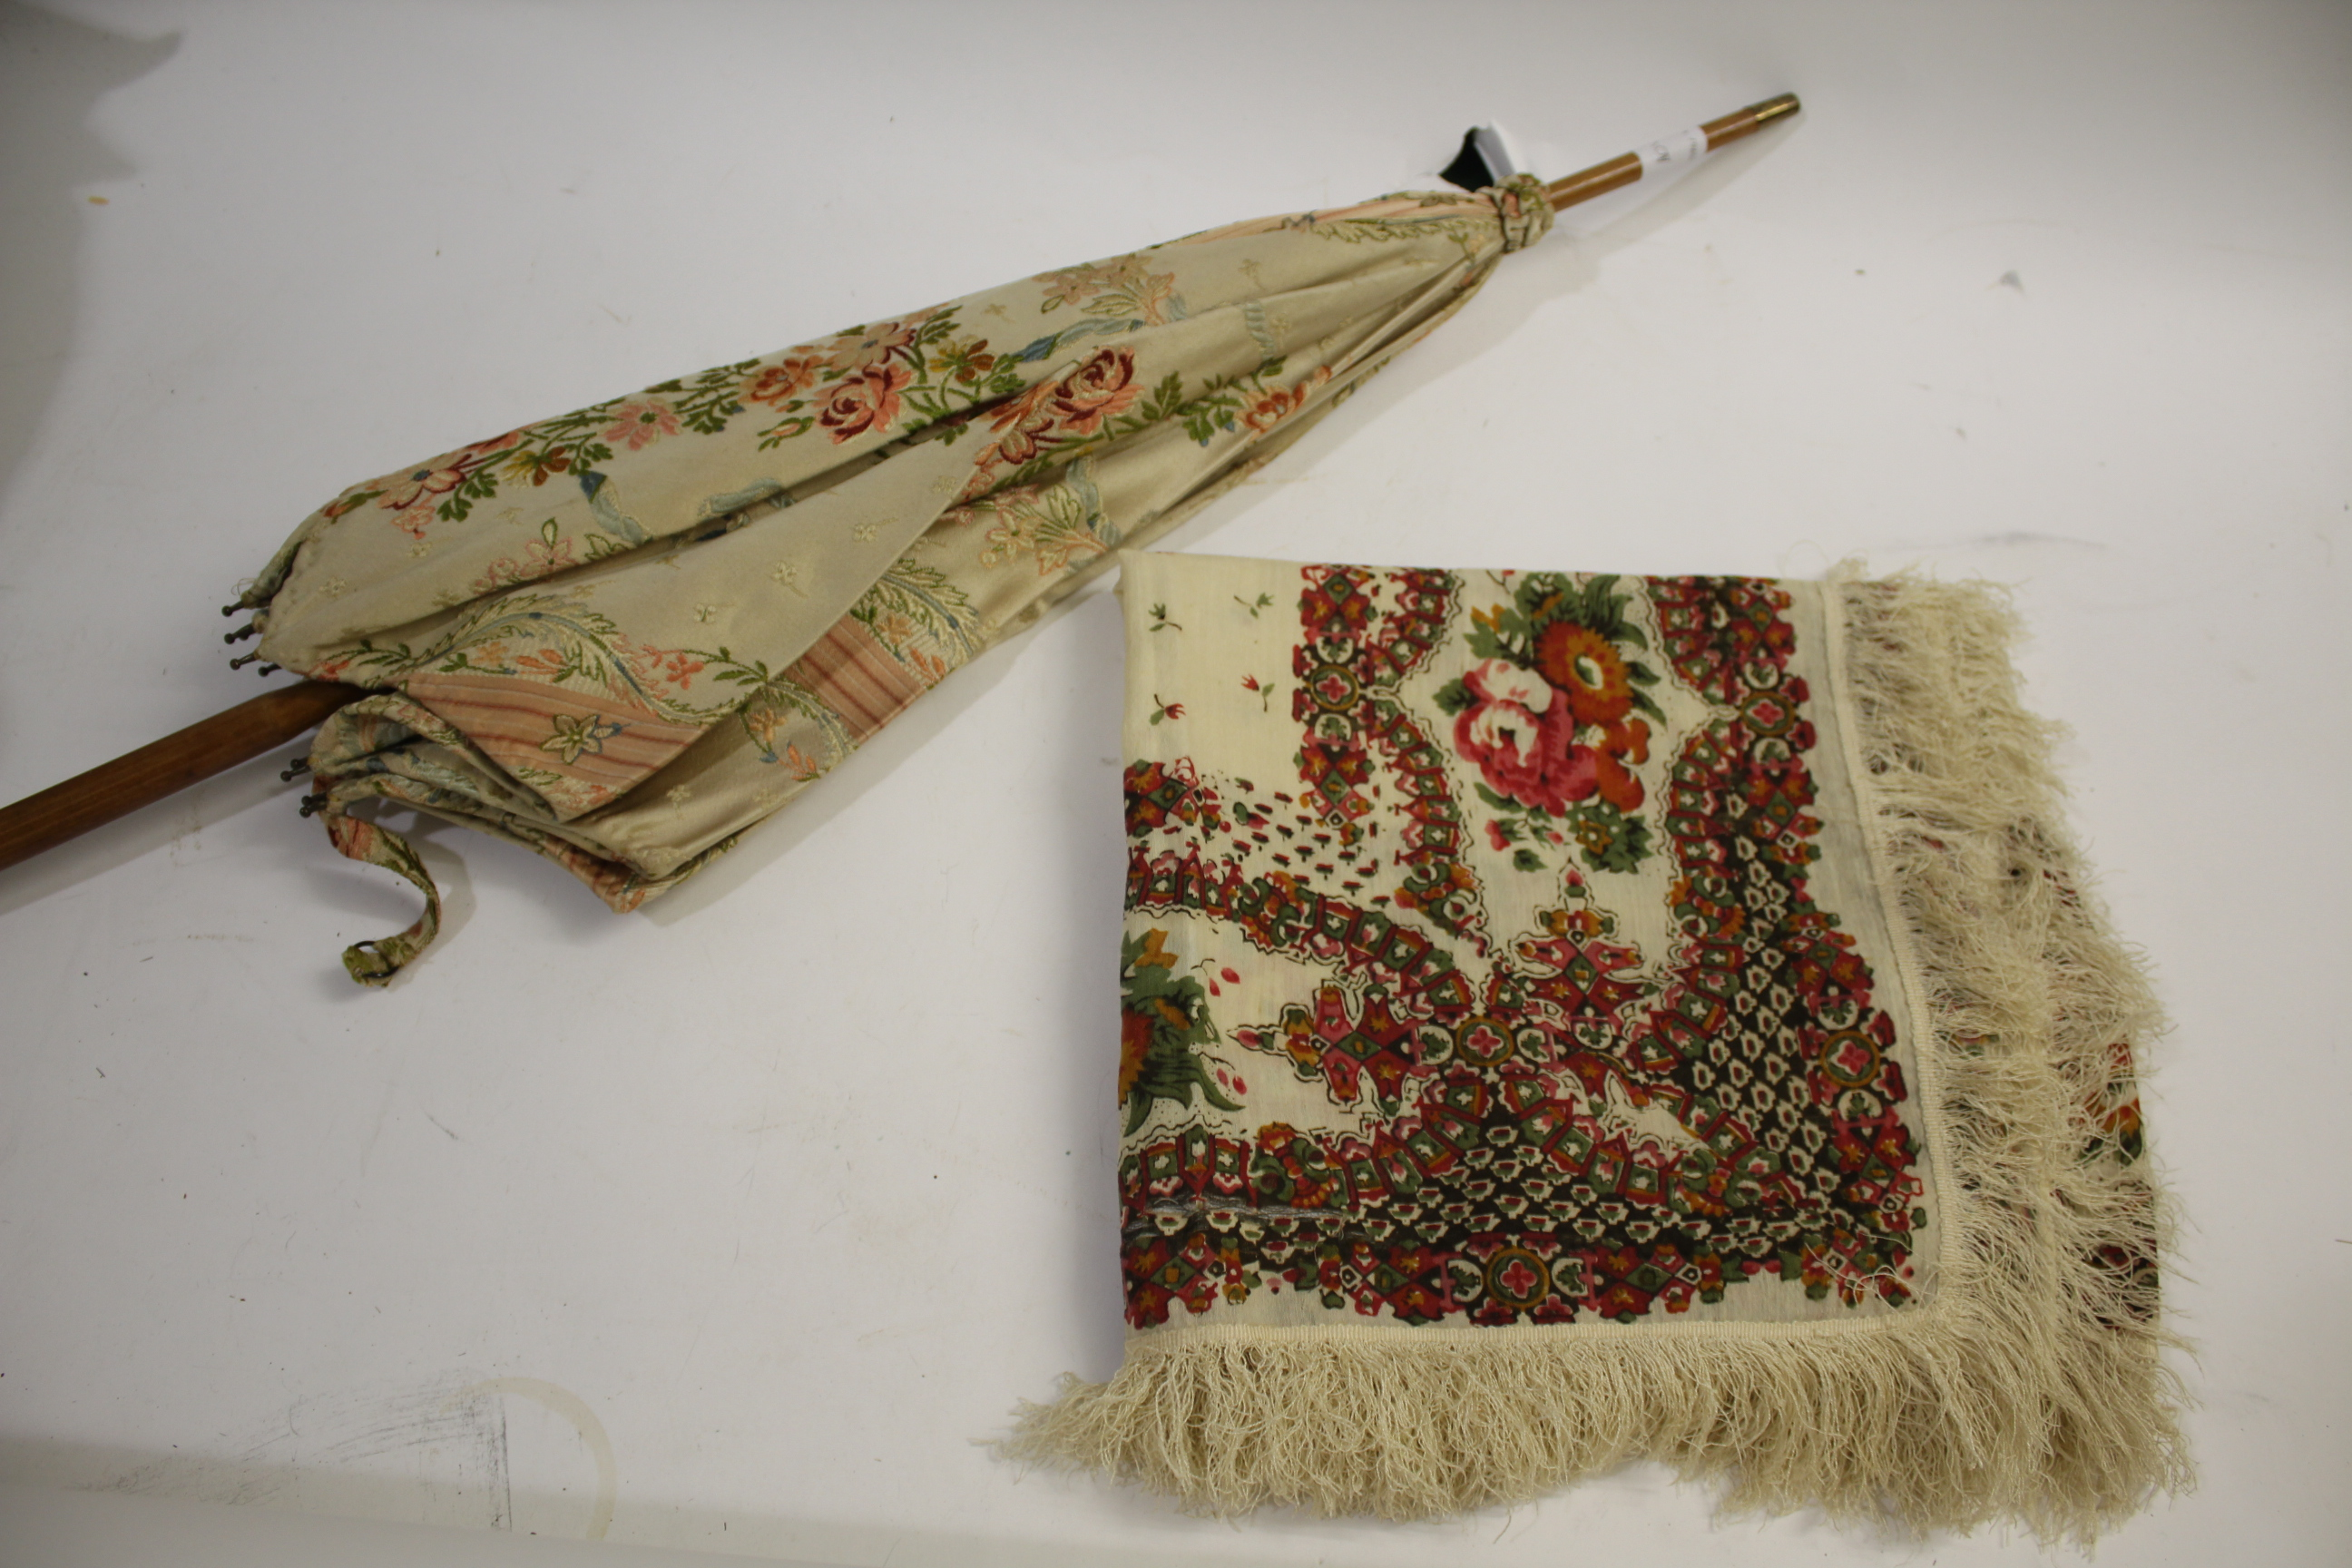 Lot 1878 - 19THC WOOL SHAWL a 19thc cream fine wool fringed shawl edged with a printed floral border, also with